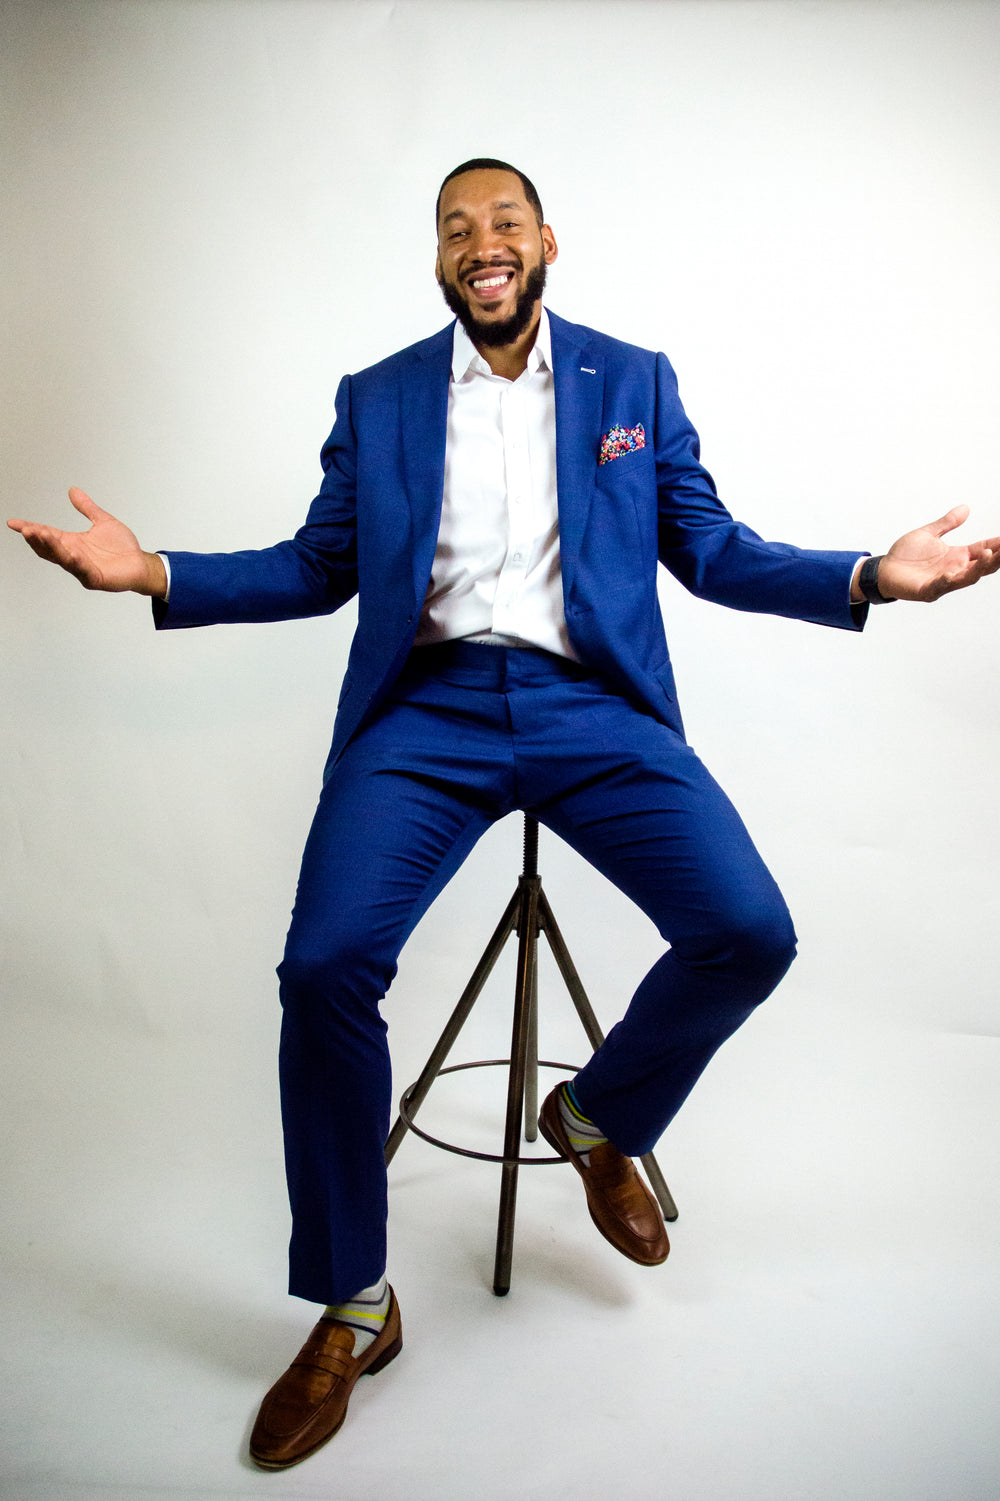 Bold blue suit on Amir Caldwell who is sitting on a stool smiling